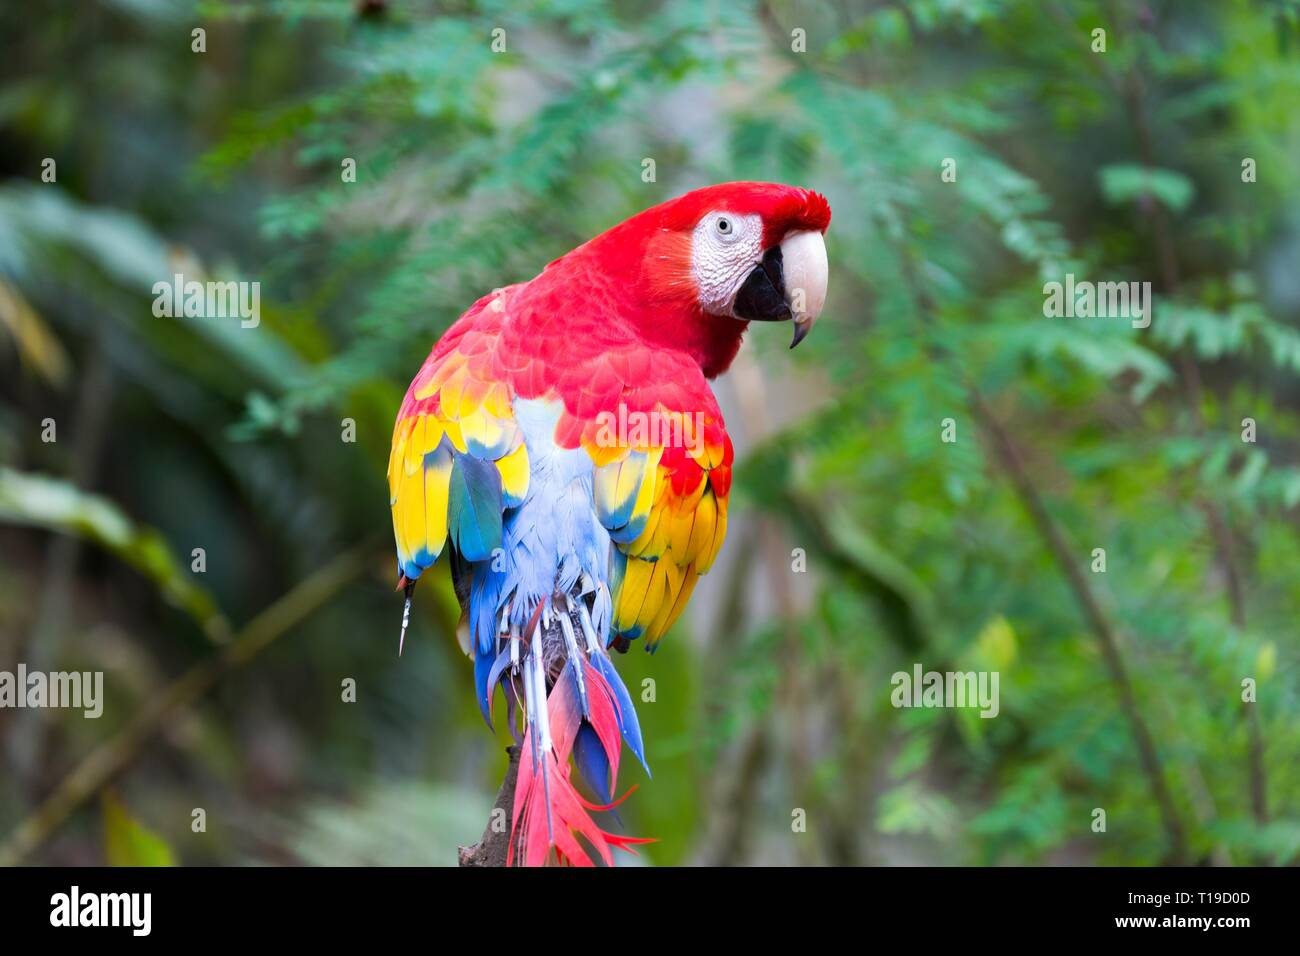 exotic-red-and-yellow-scarlet-parrot-mac